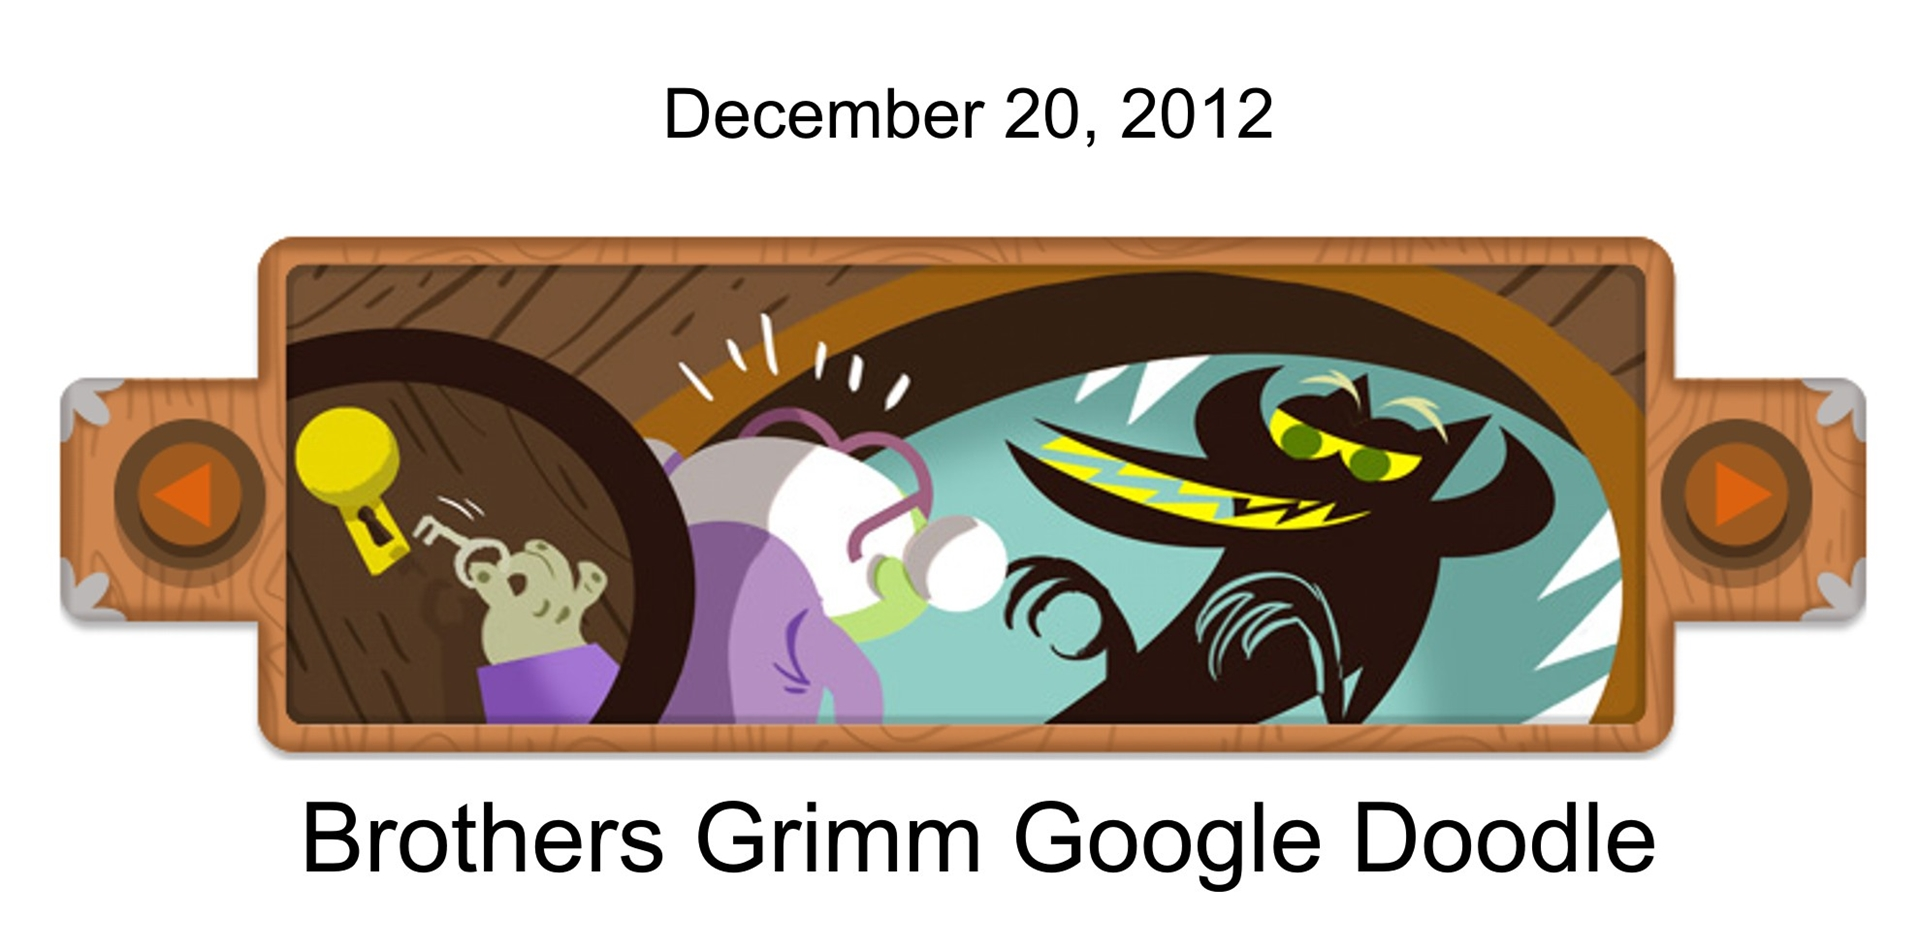 Brothers Grimm Google Doodle